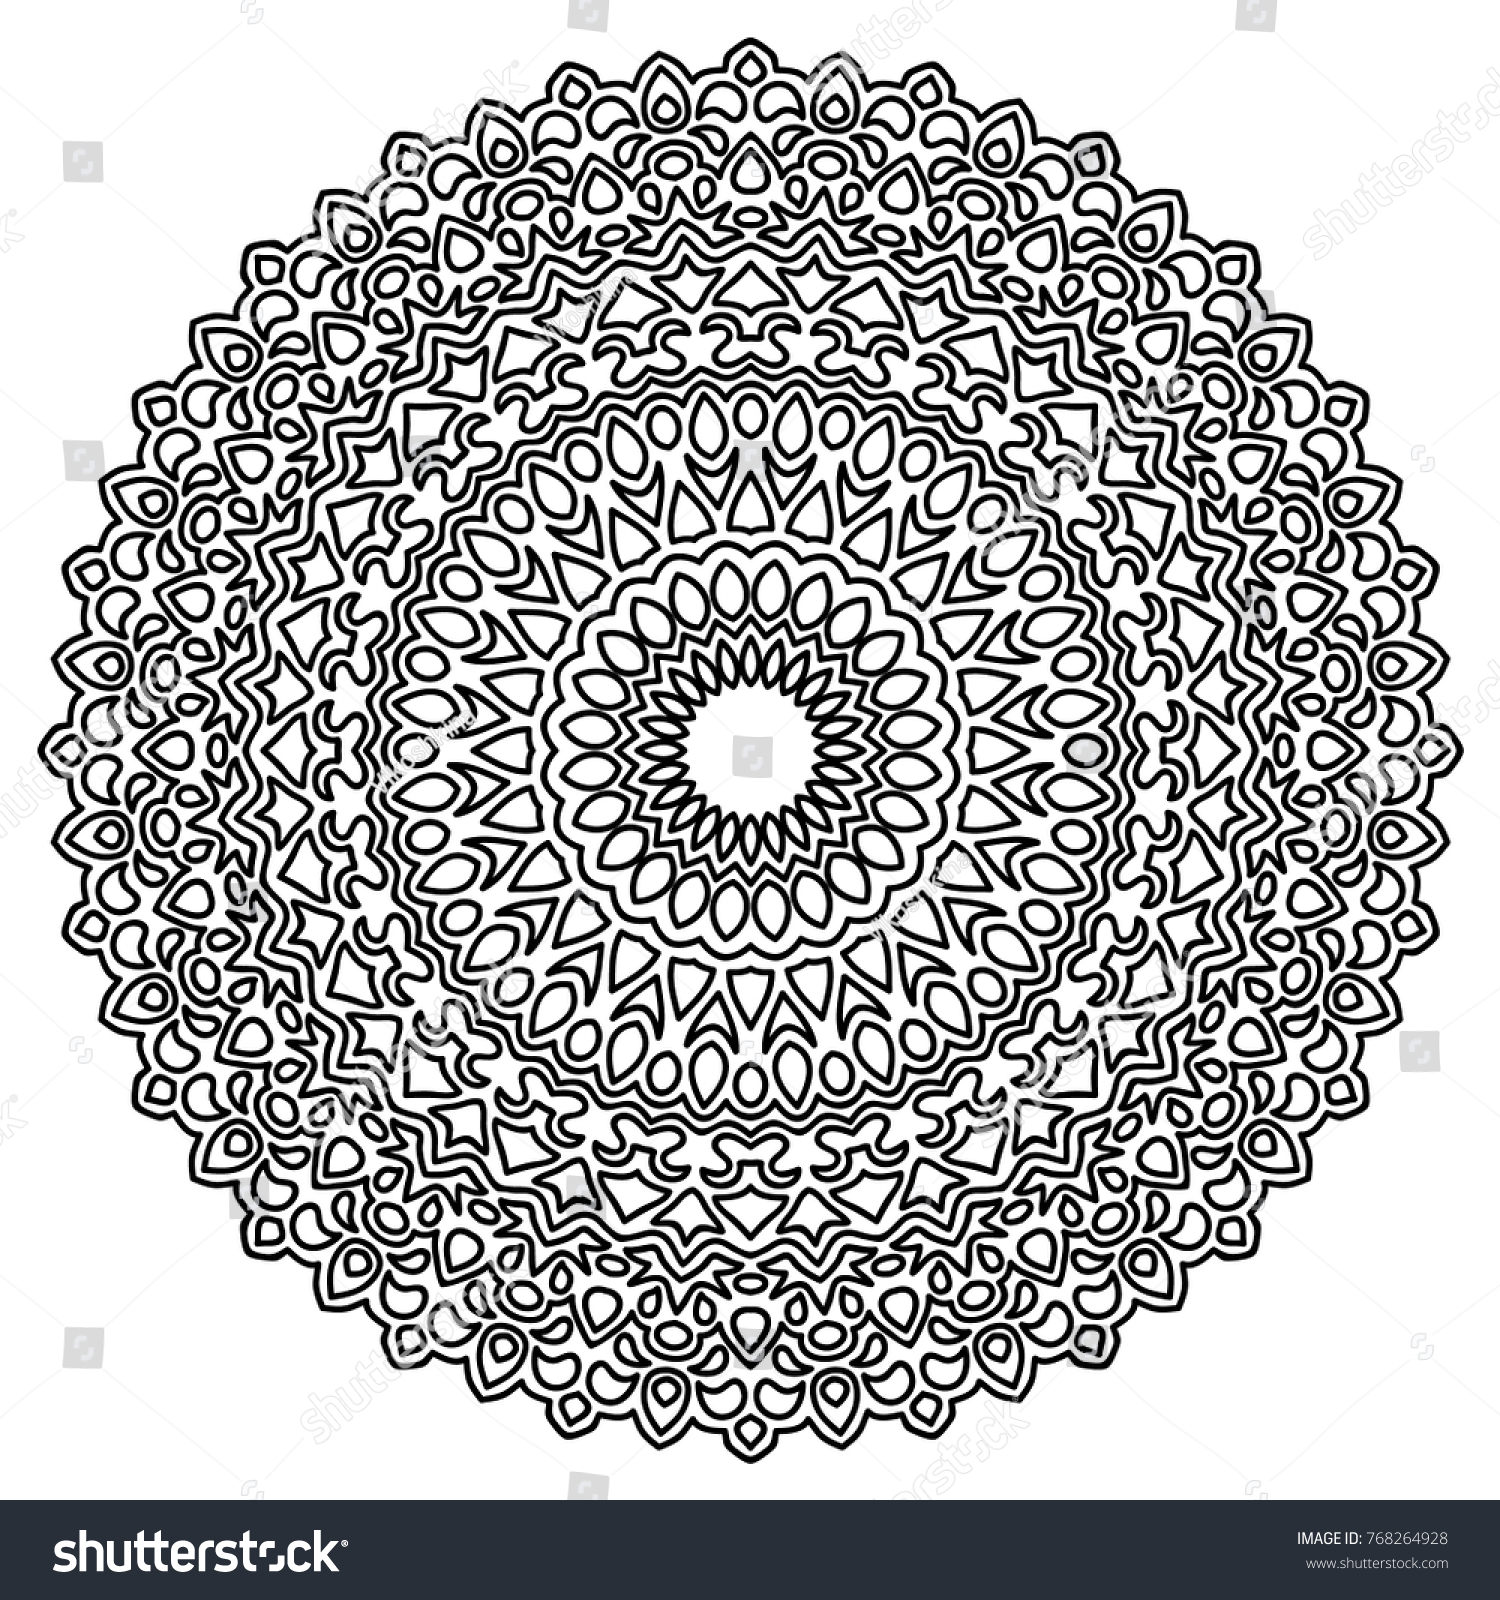 Ethnic Mandala for Adult Coloring Book Black and White Round Pattern in Indian Style